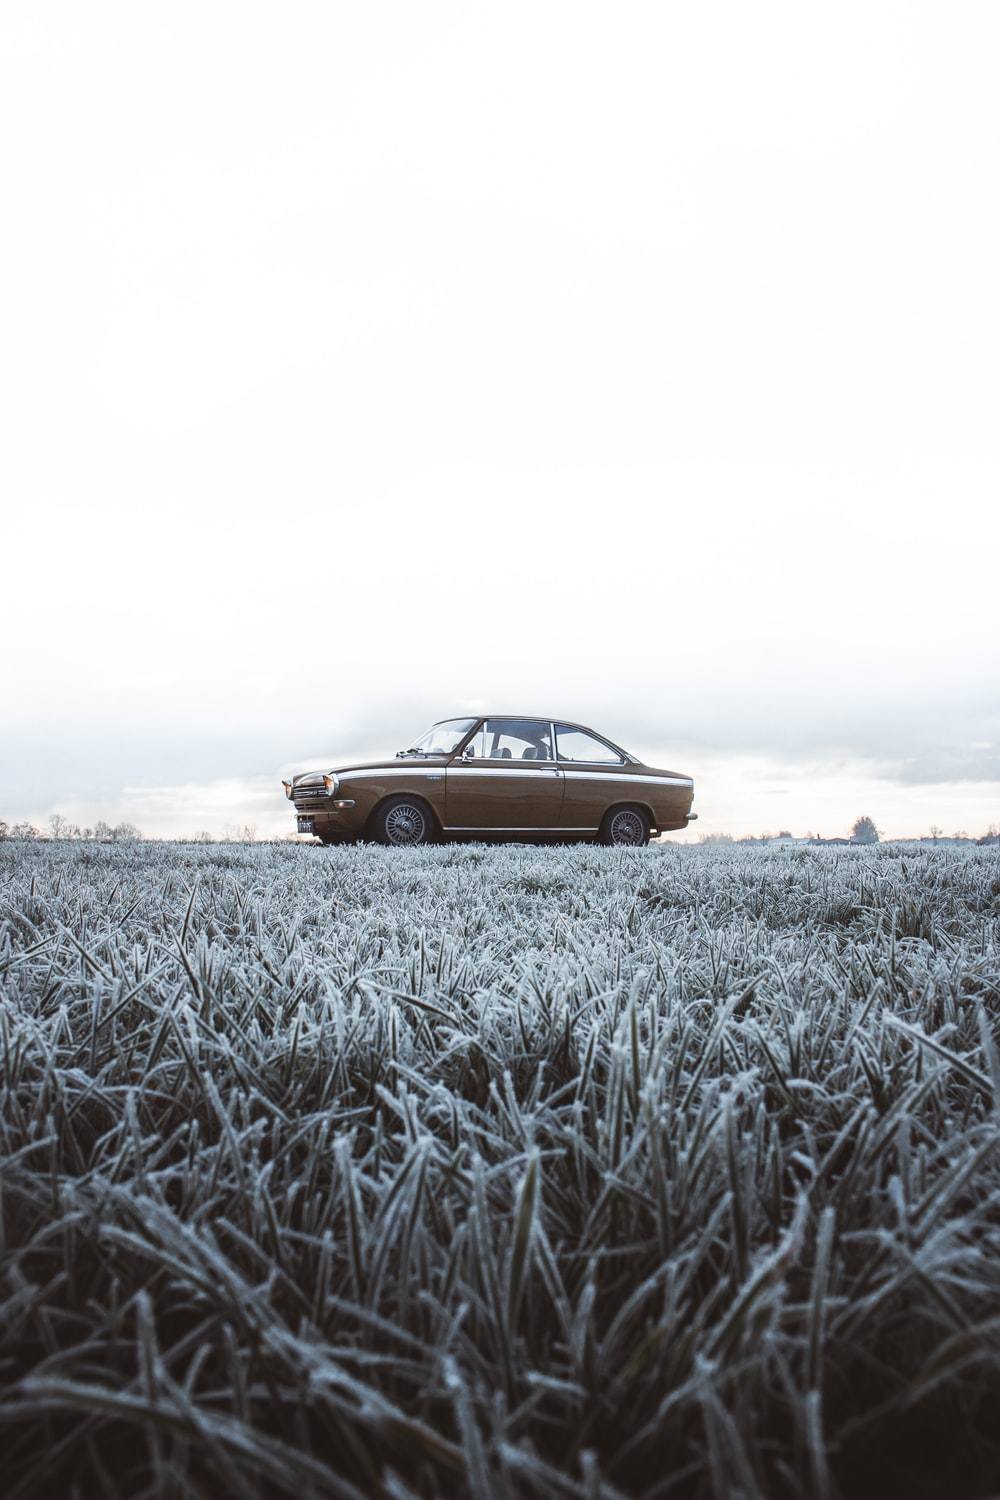 brown car on gray field during daytime